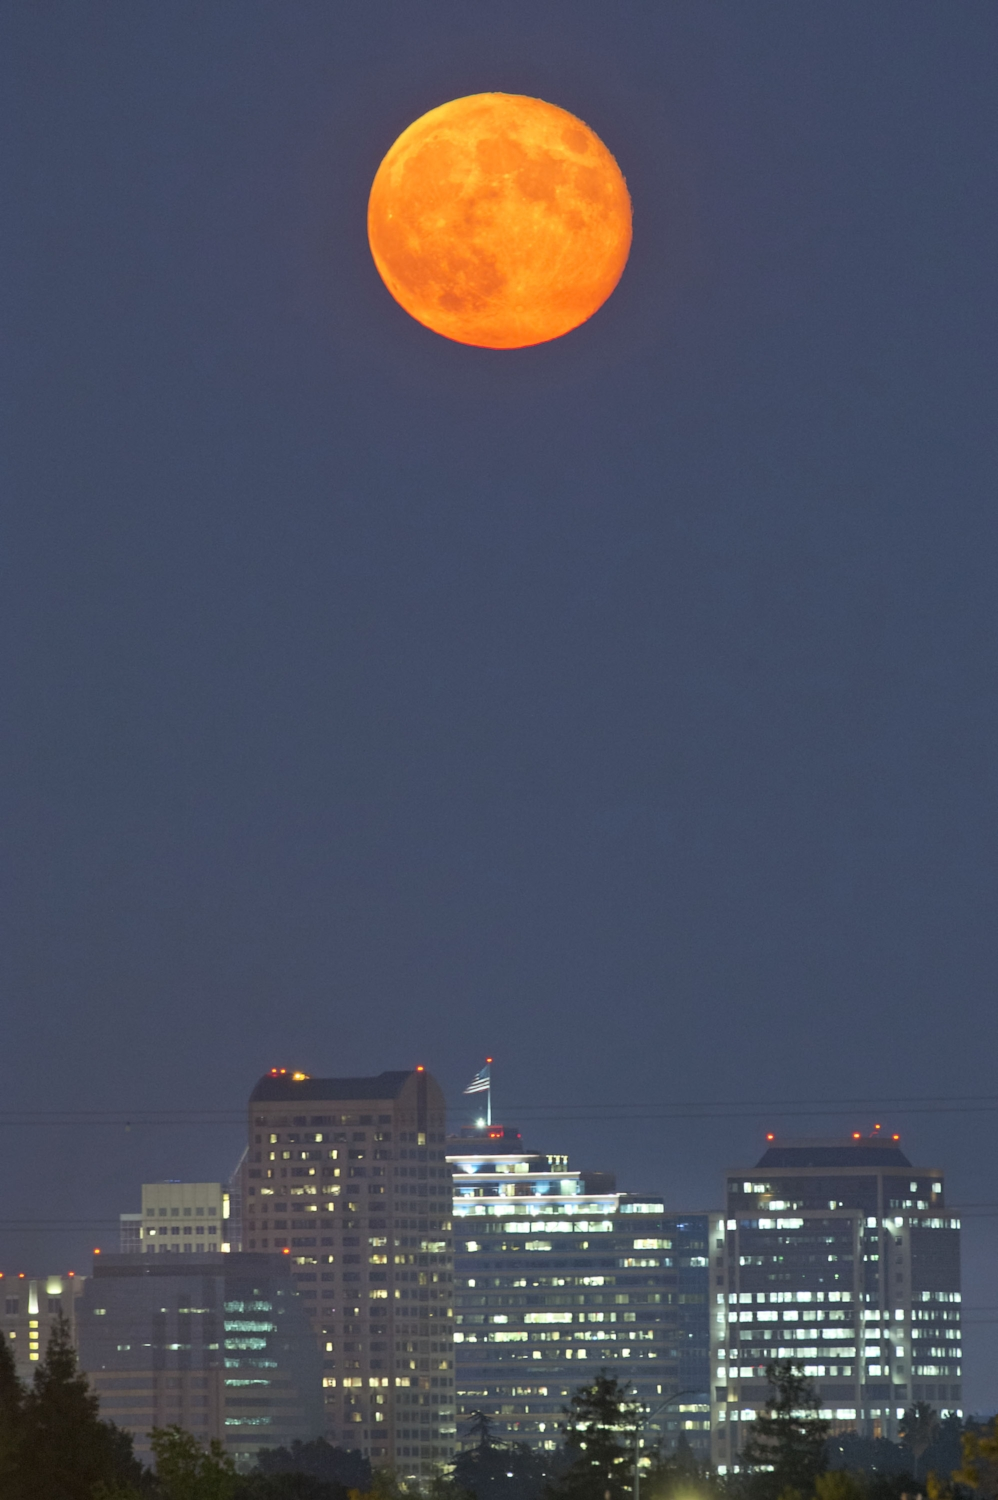 """The """"Supermoon"""" rises over the Sacramento skyline on Tuesday, September 9, 2014. When the moon's orbit brings it closest to Earth, or perigee, when it is full it is called a """"Supermoon."""""""